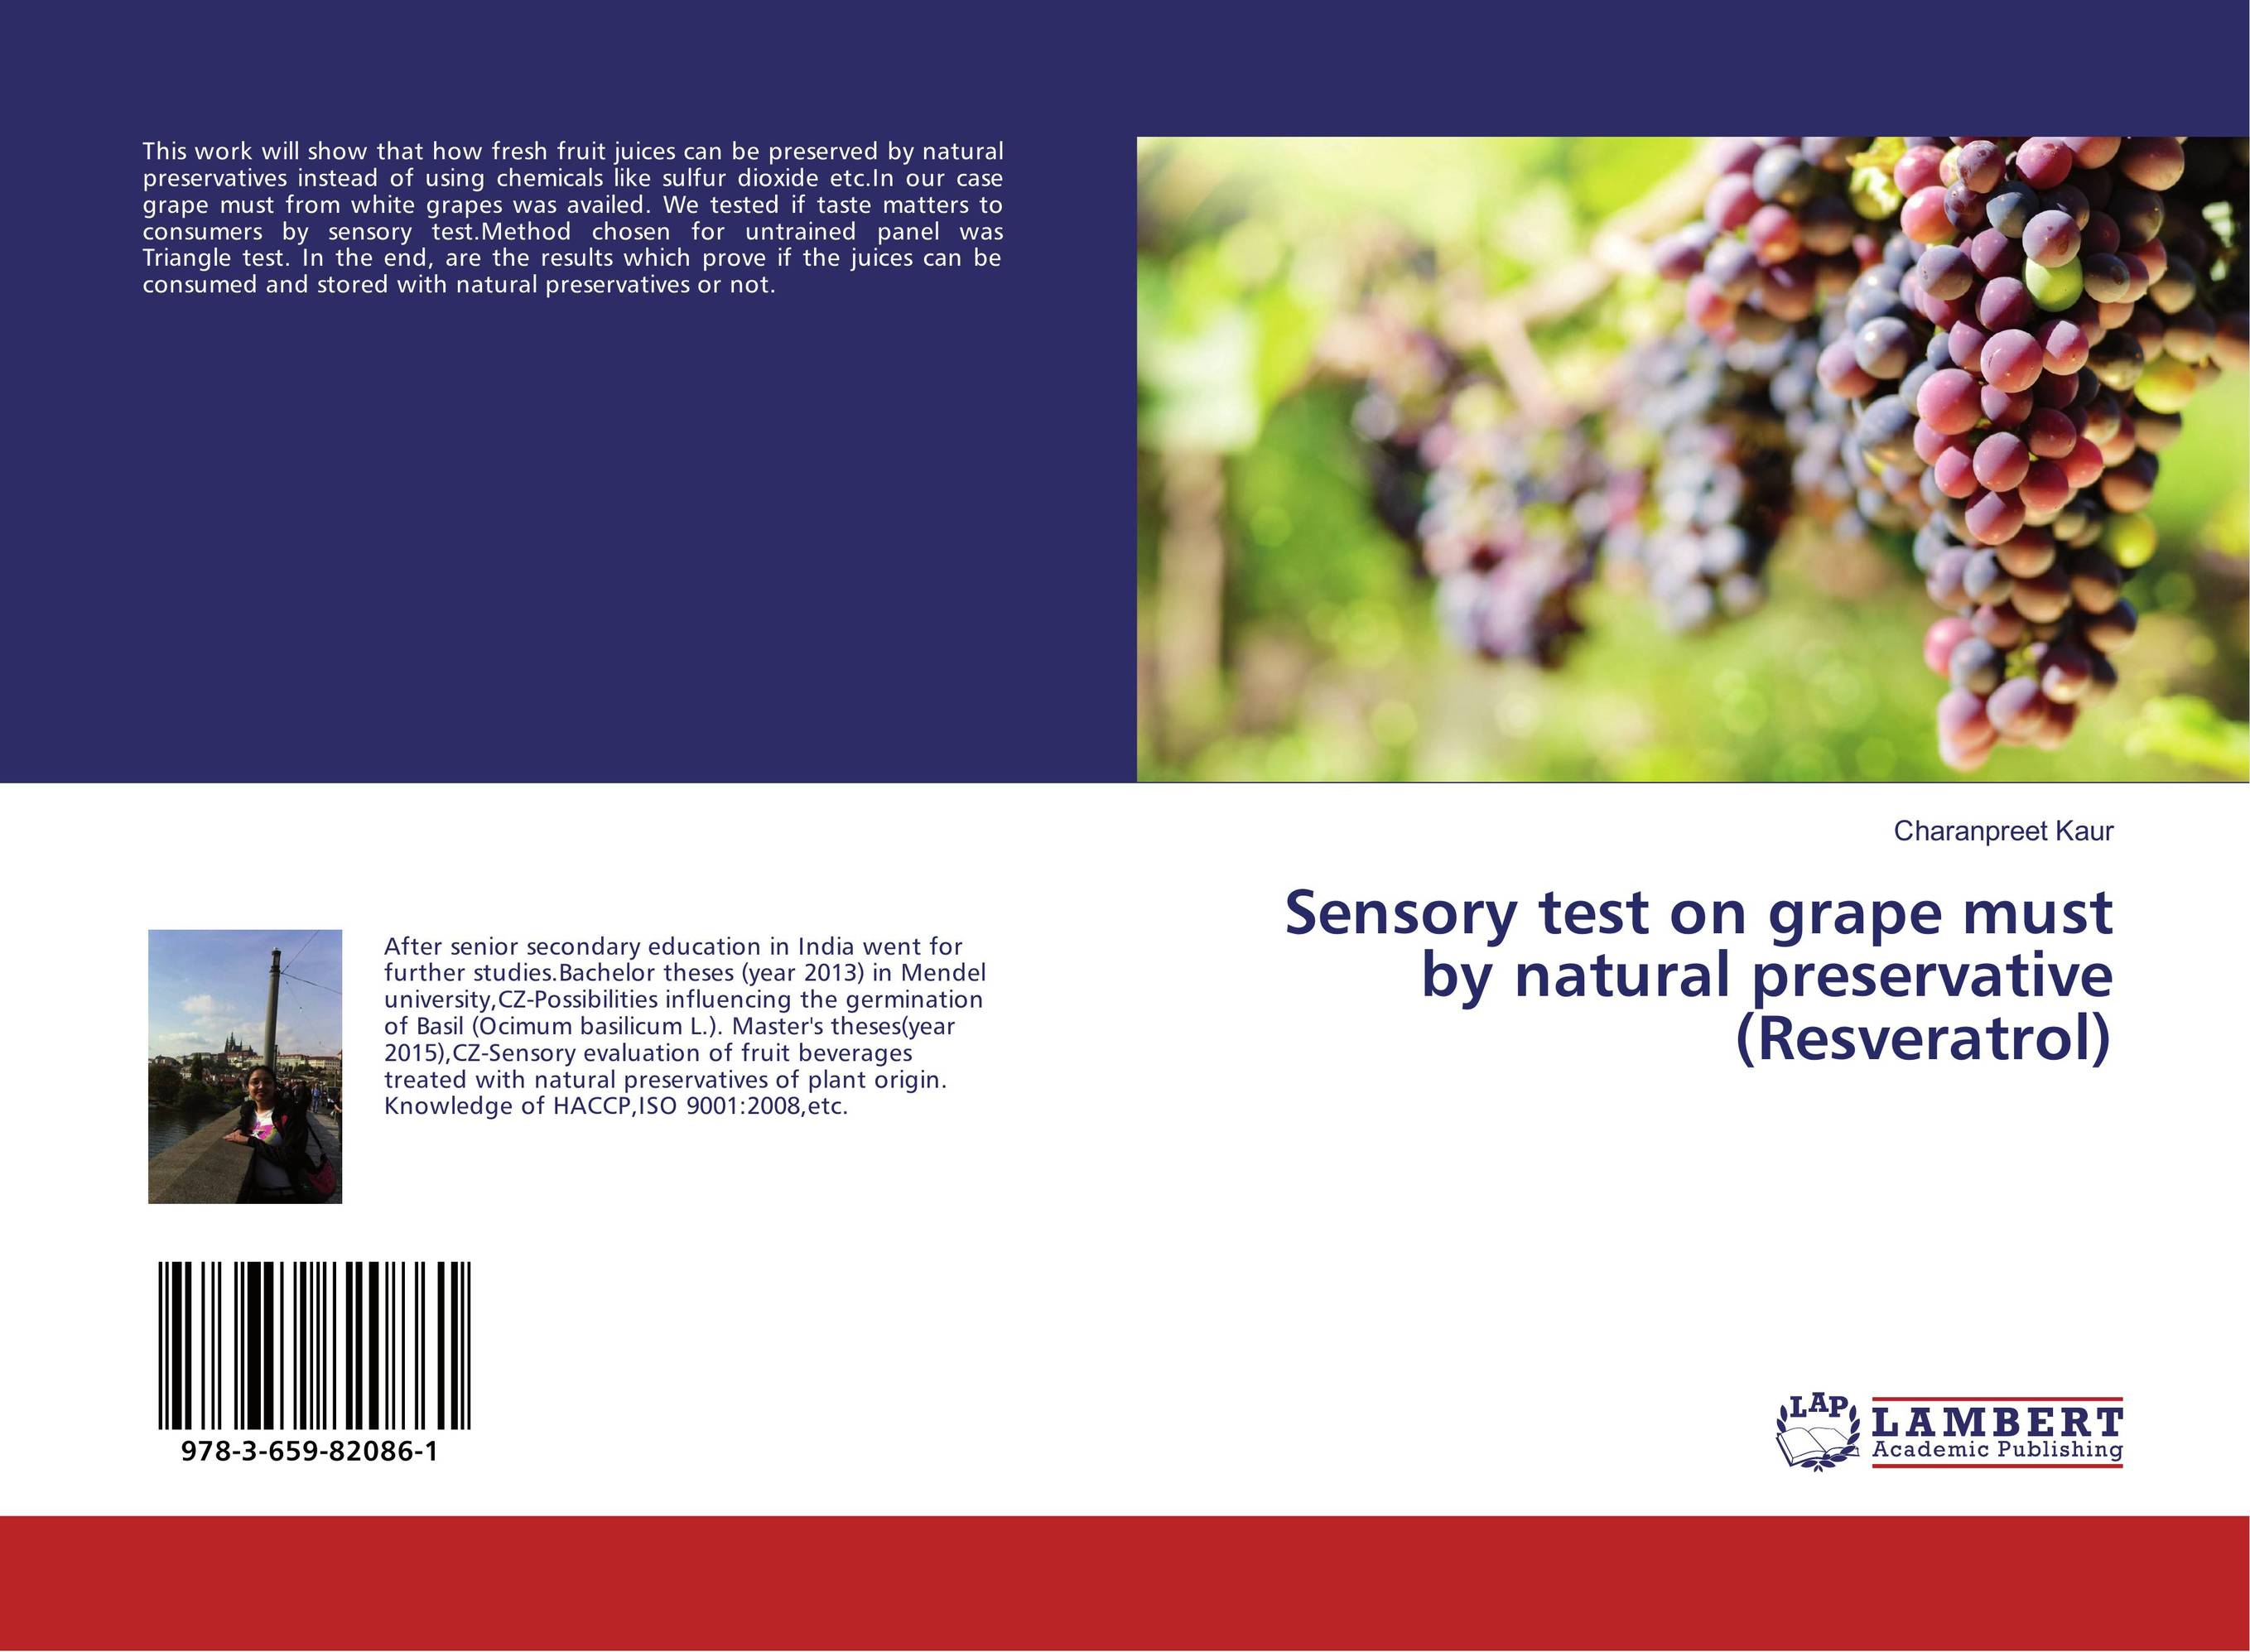 Sensory test on grape must by natural preservative (Resveratrol)